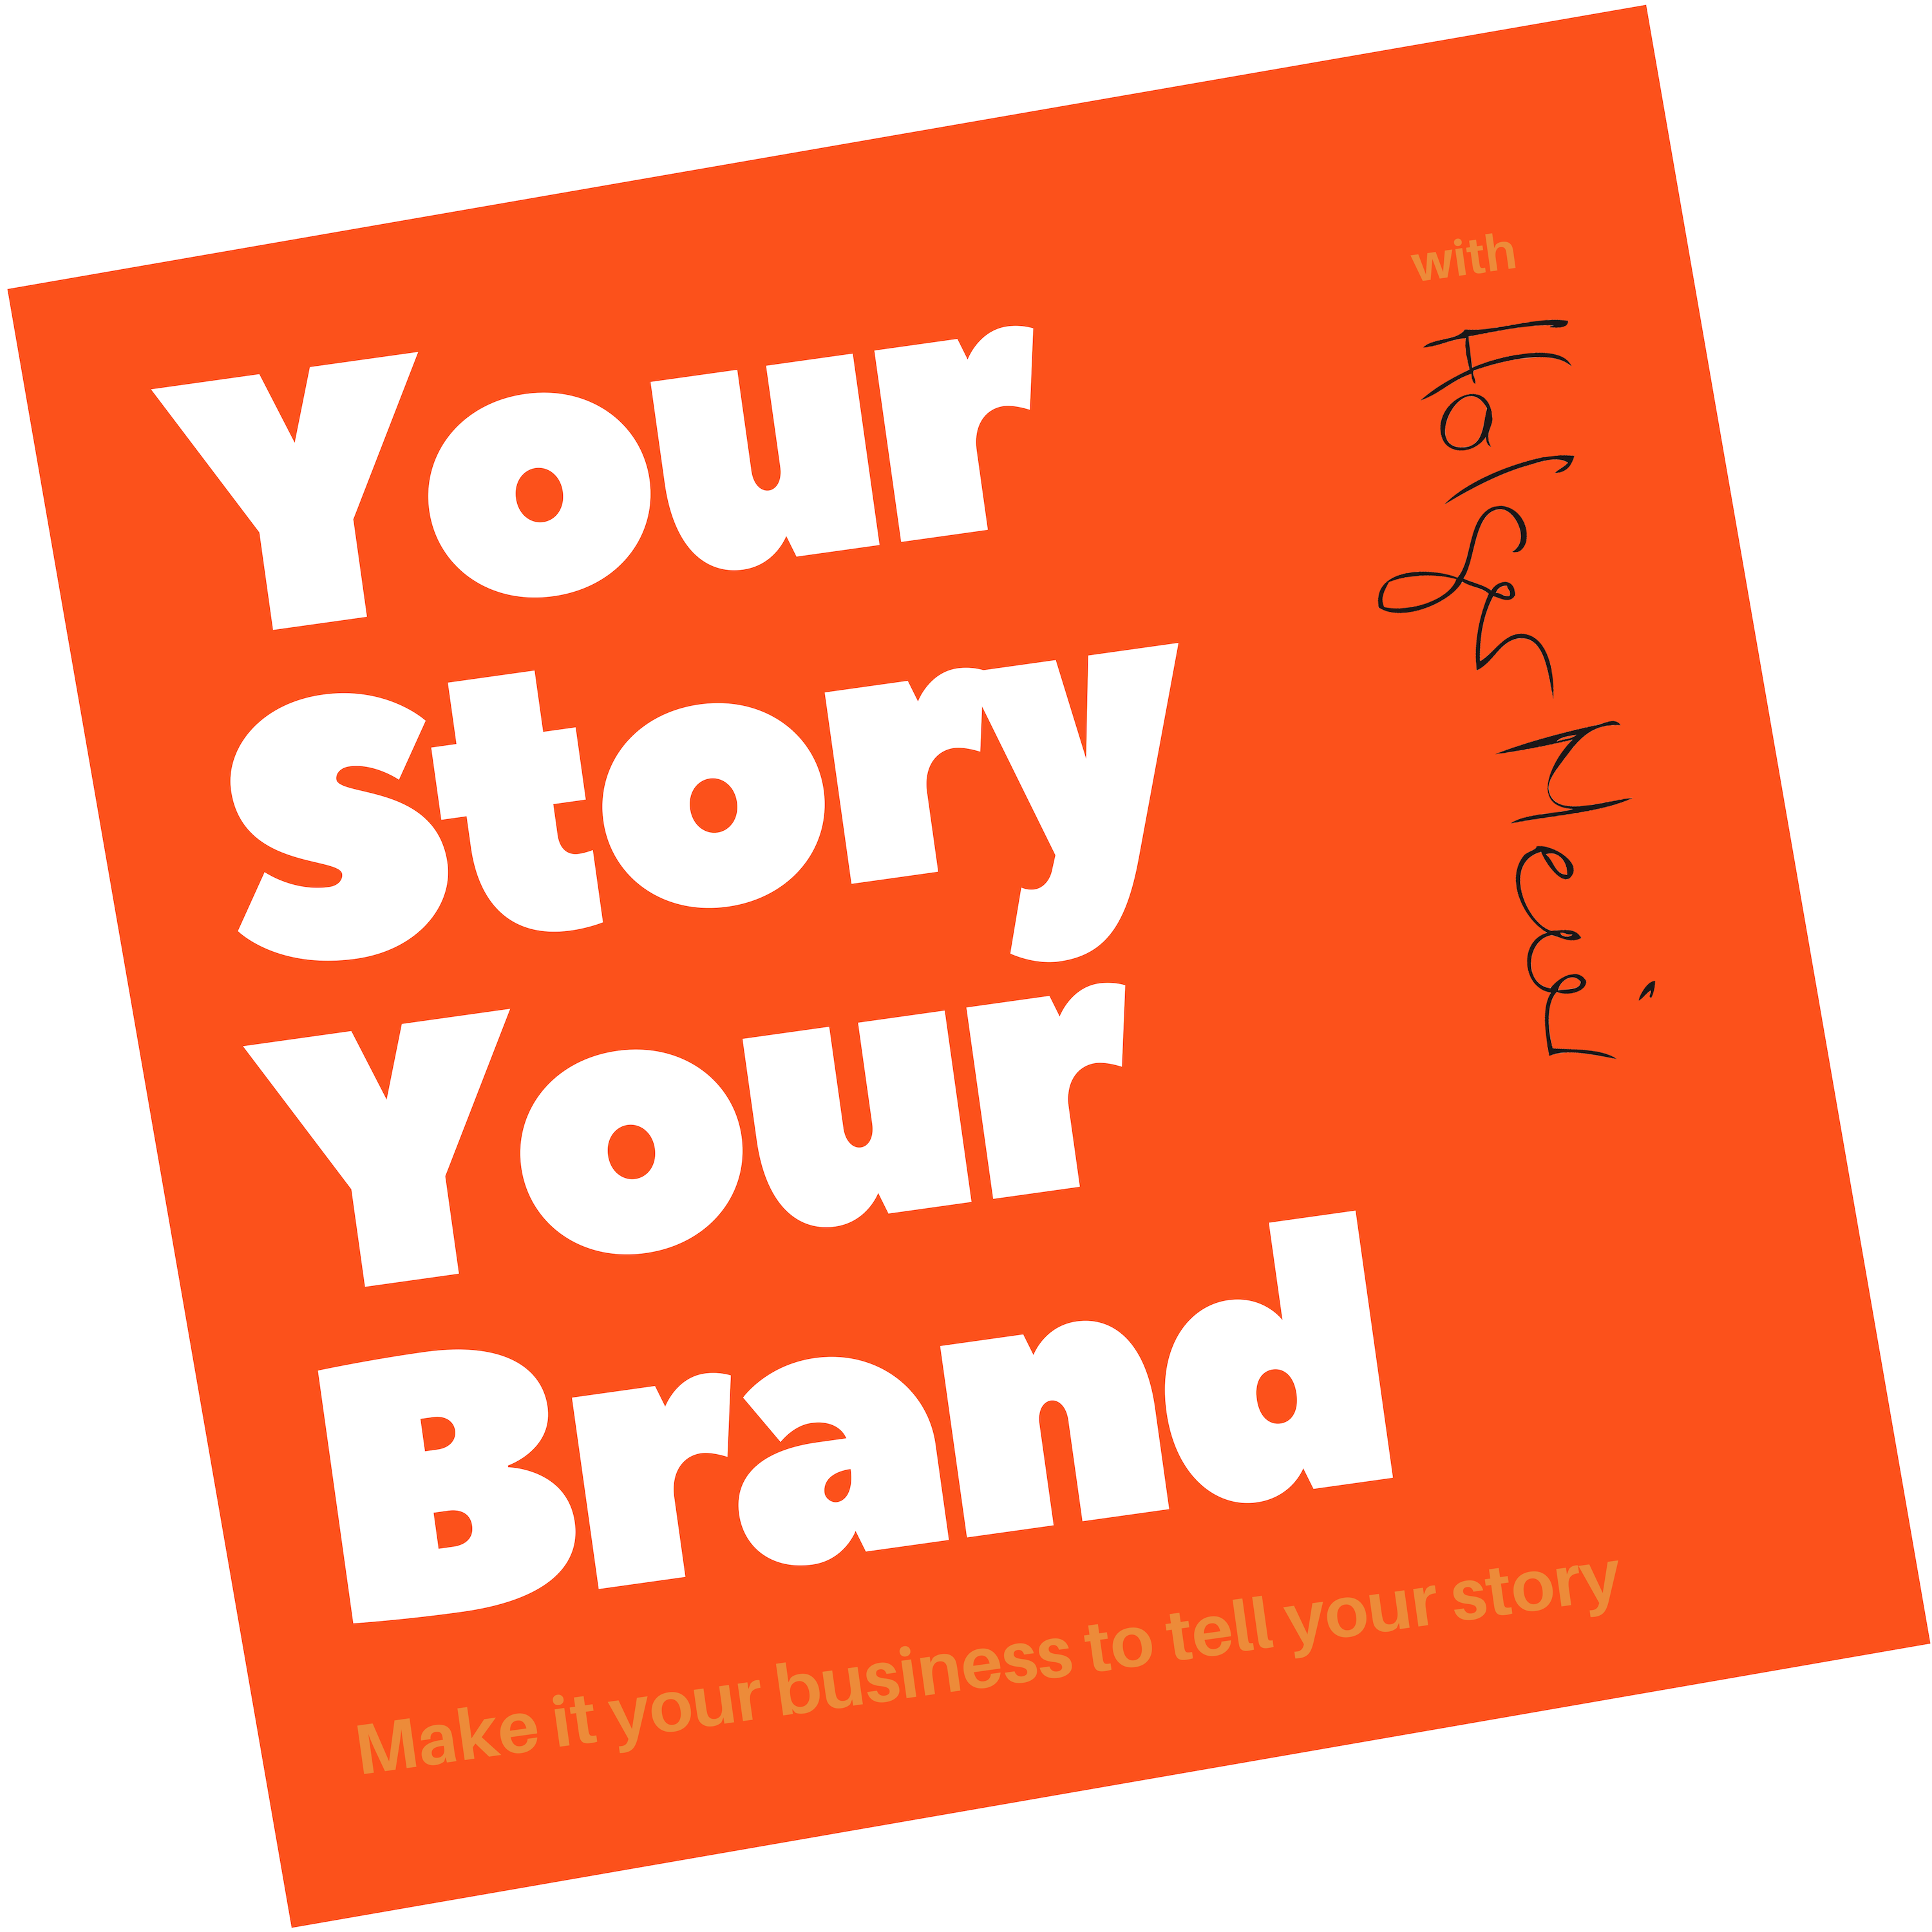 Your Story Your Brand with Holger Meier